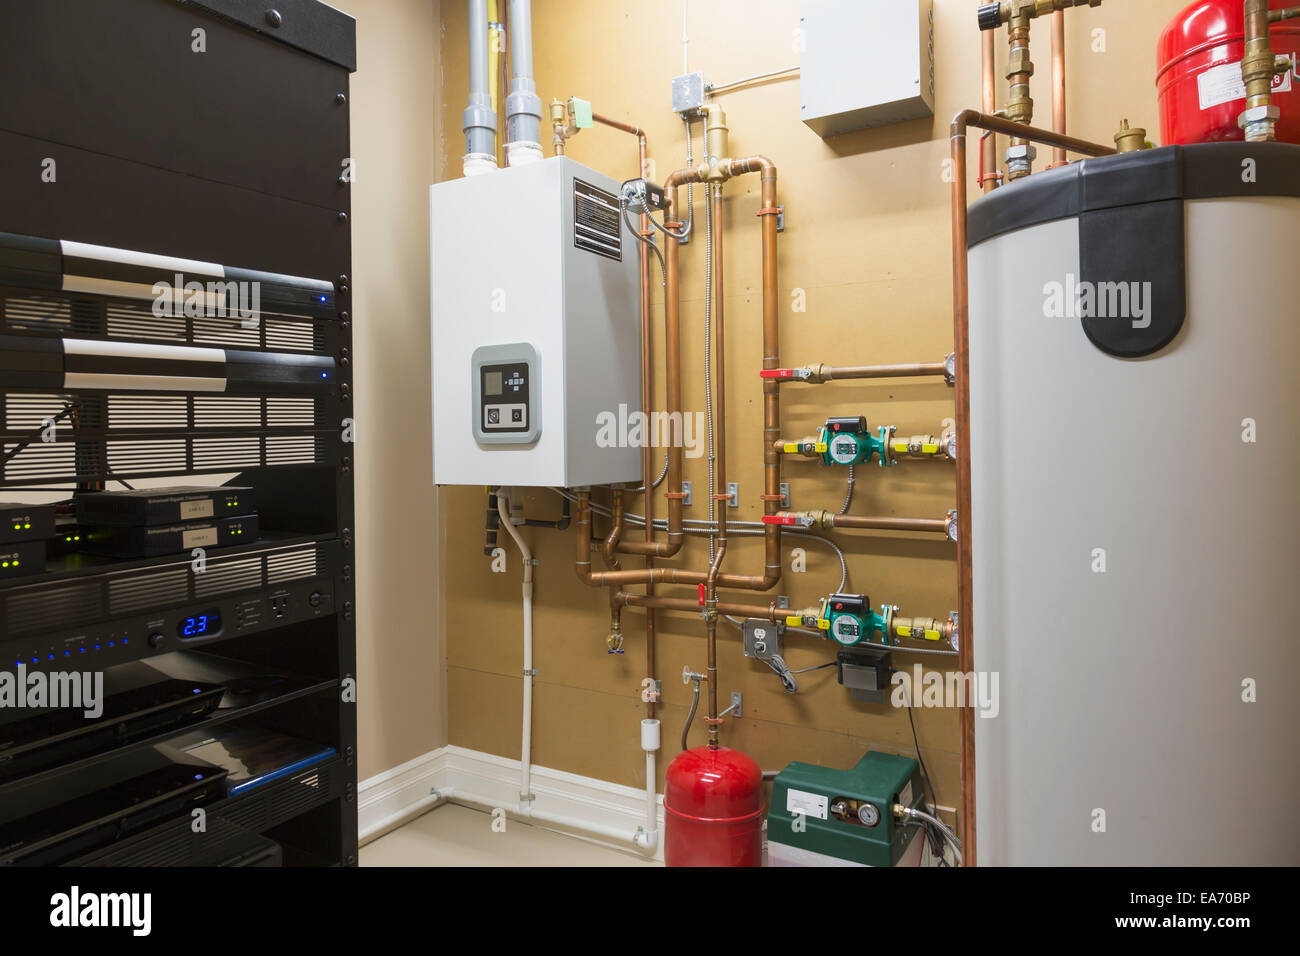 Utility room boiler stock photos utility room boiler for Gas home heating systems